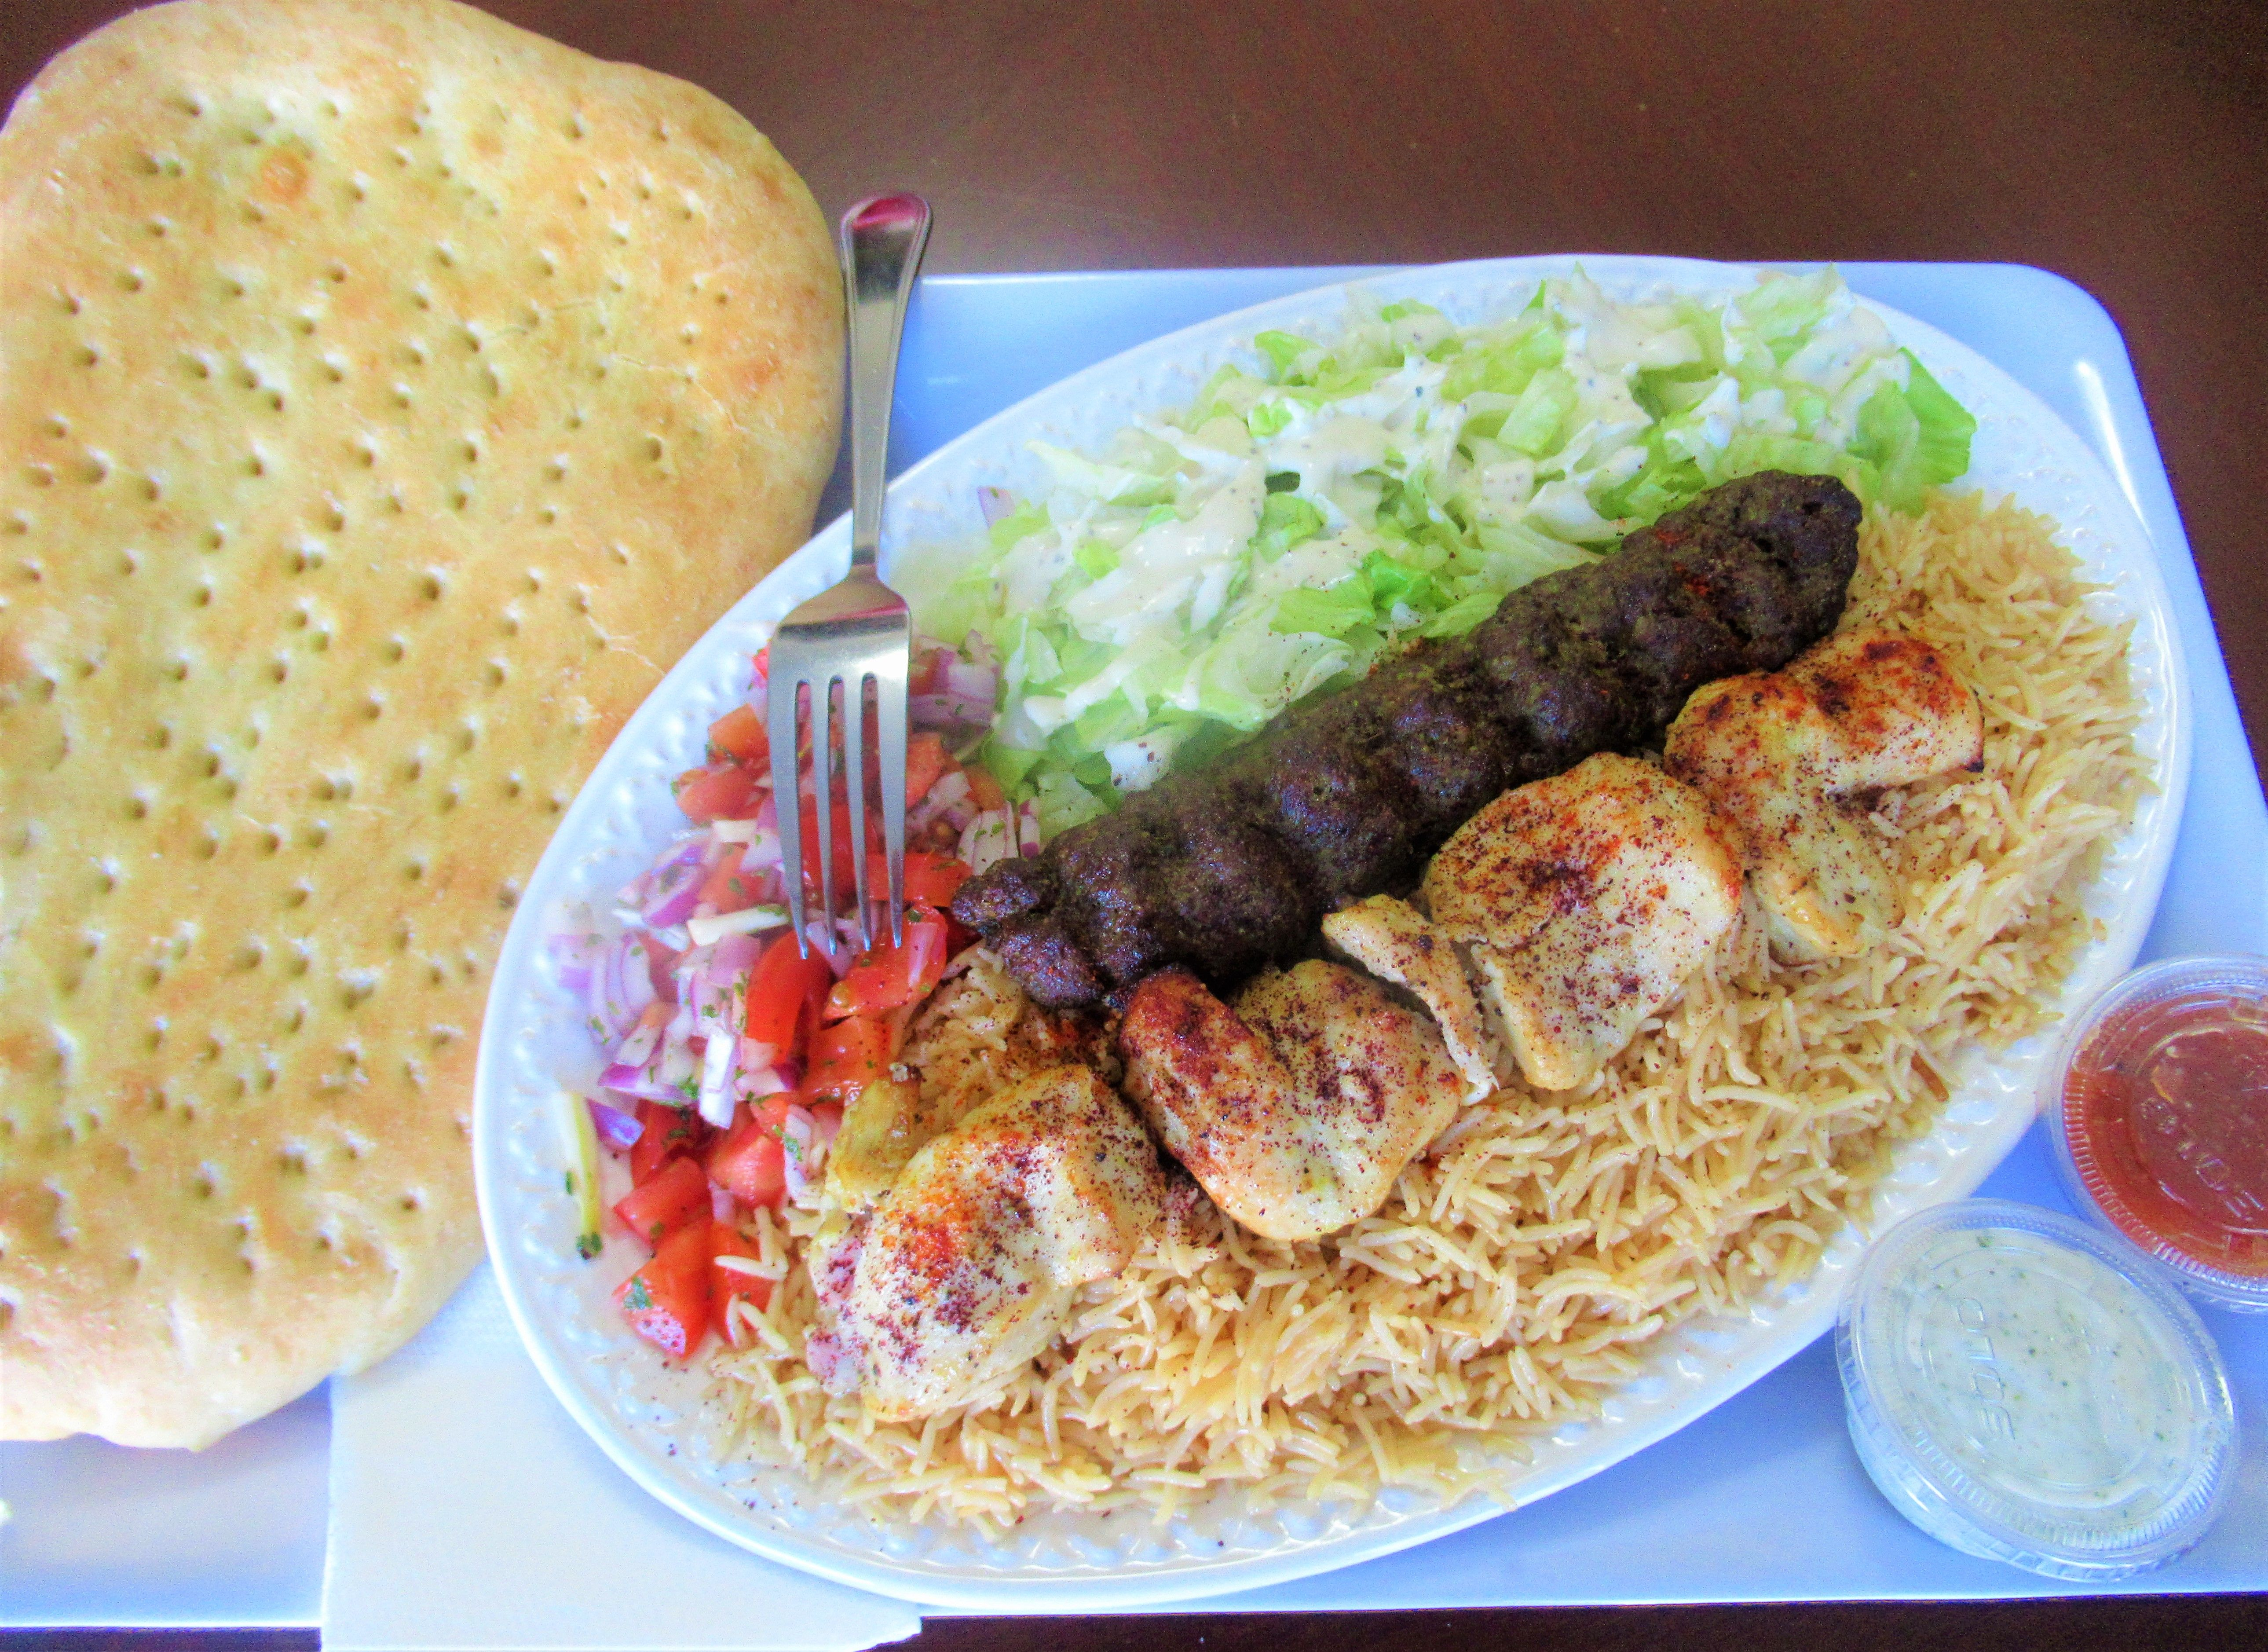 Afghan kabob koobedeh kabob shami kabob recipe httpswww this is cooking show channel forumfinder Choice Image